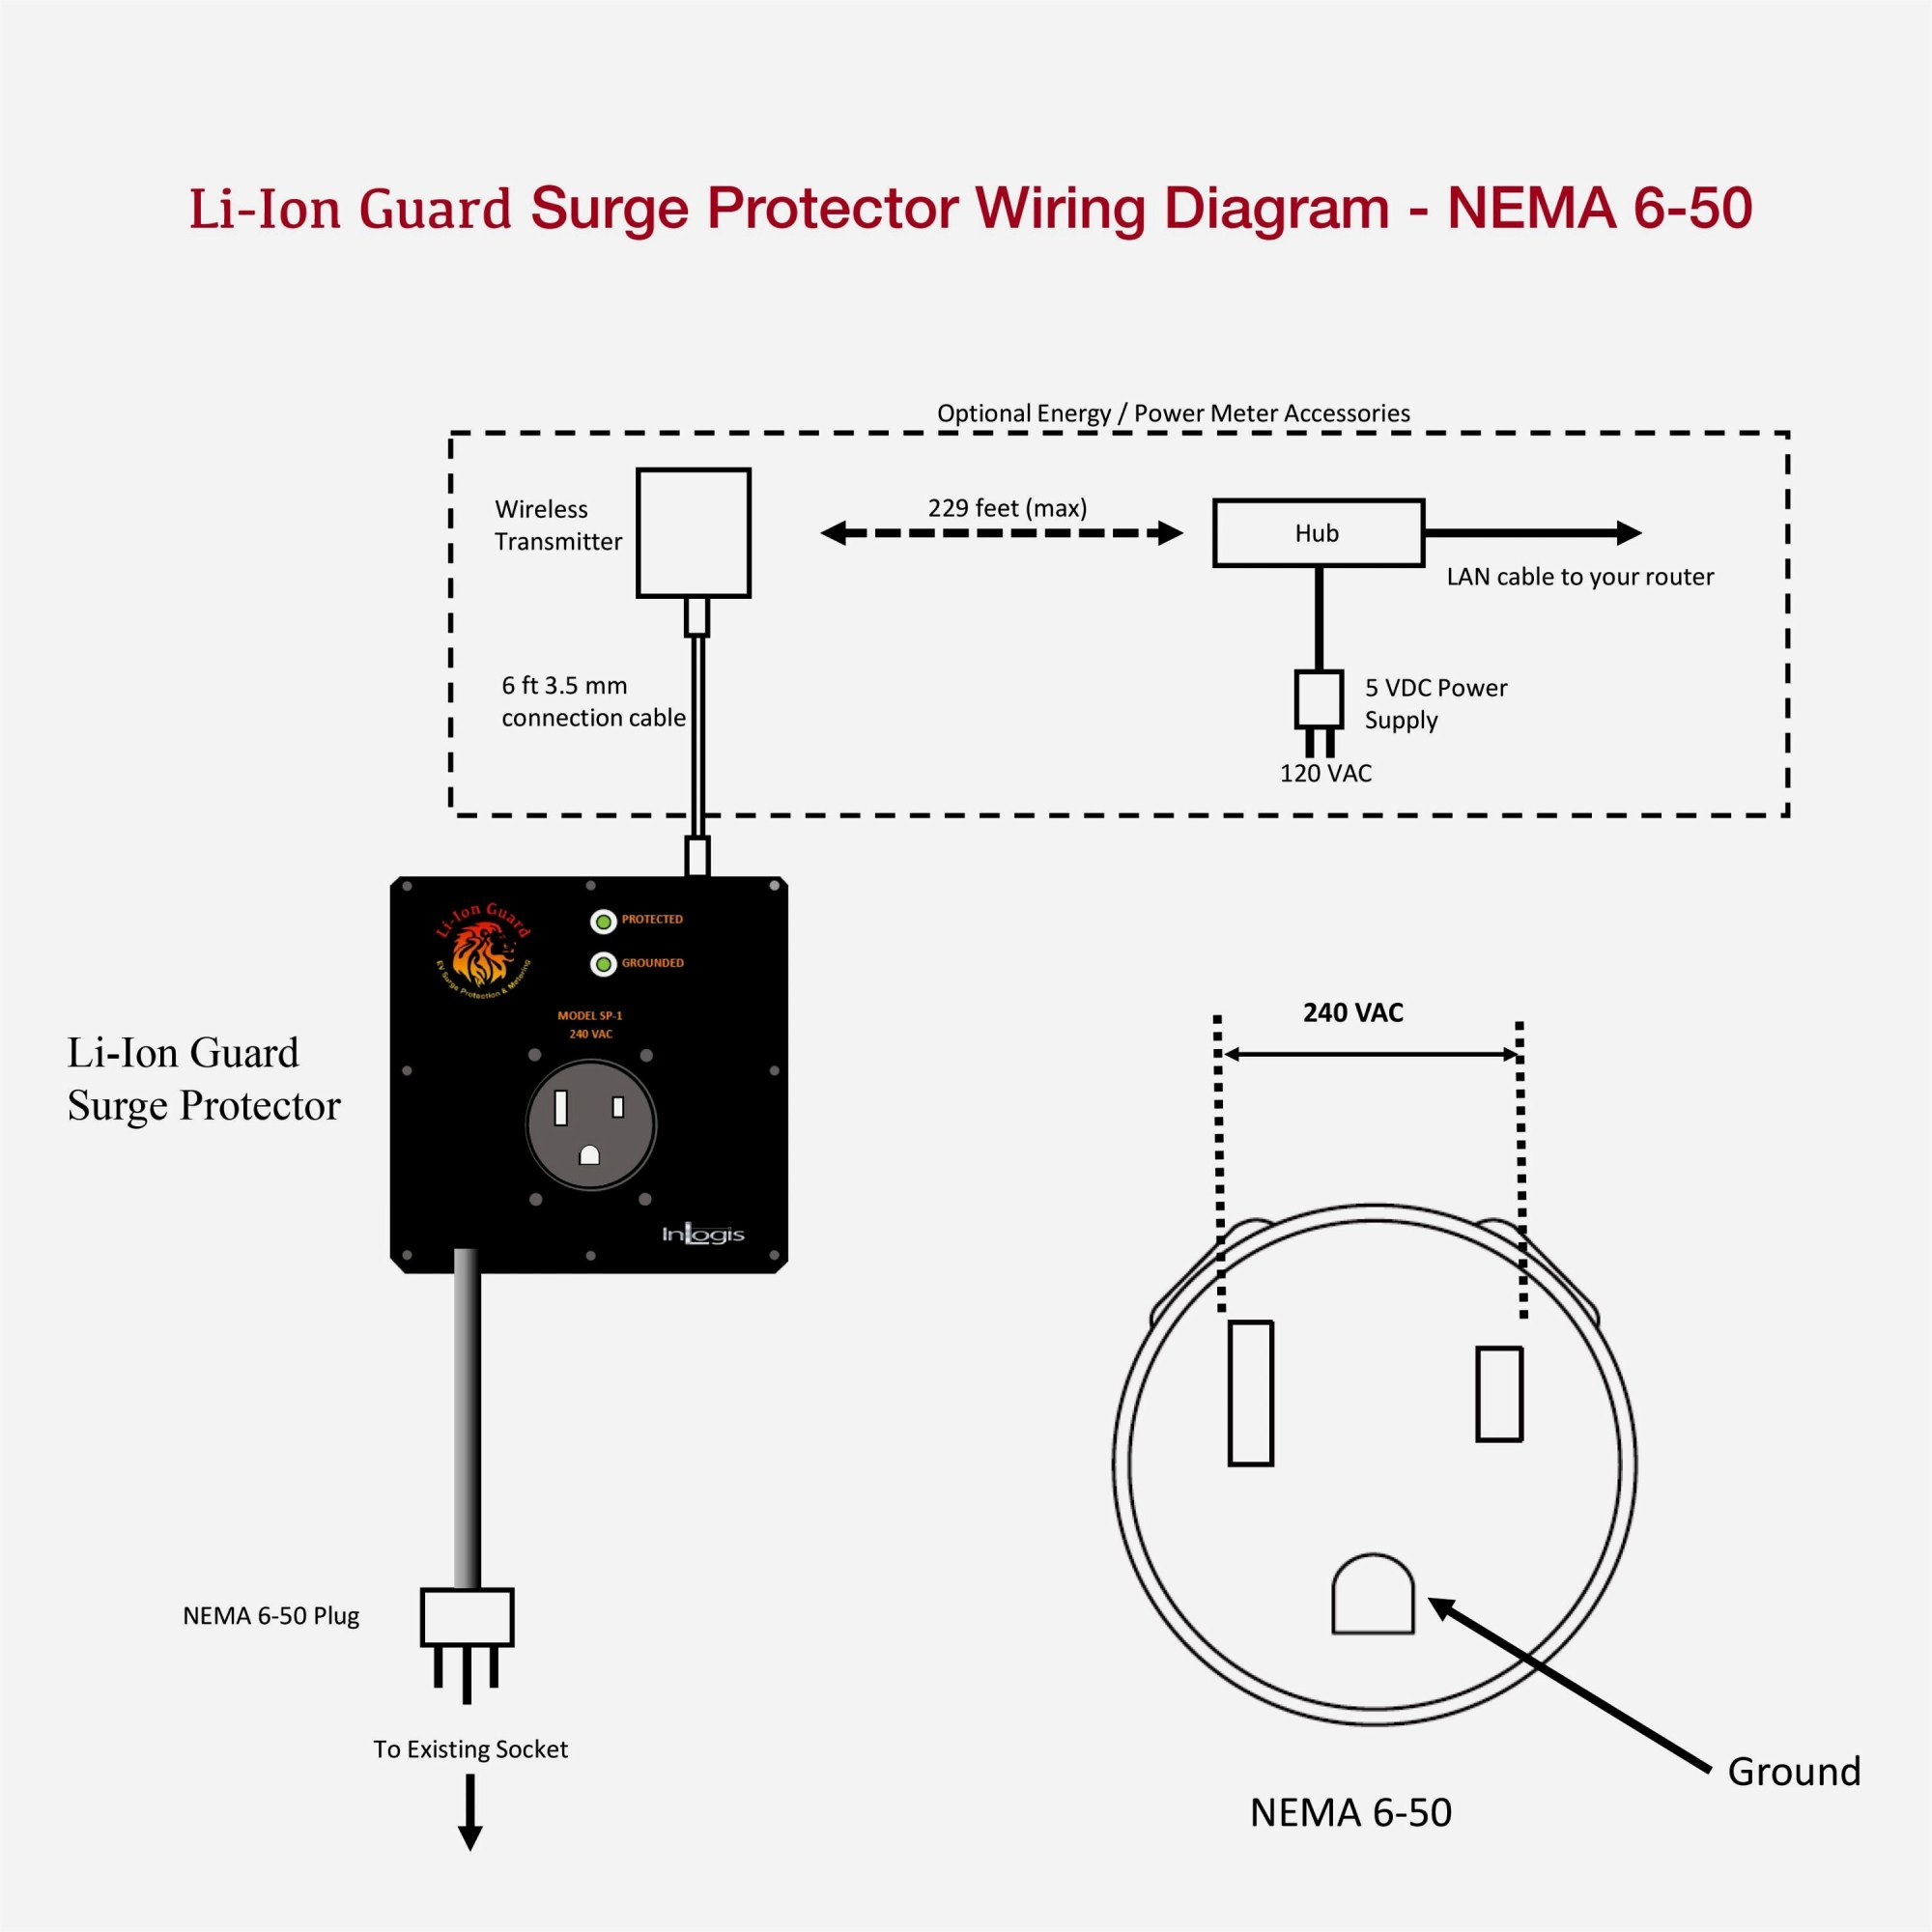 hight resolution of l6 30r wiring diagram free wiring diagraml6 30r wiring diagram nema wiring diagram symbols simple nema